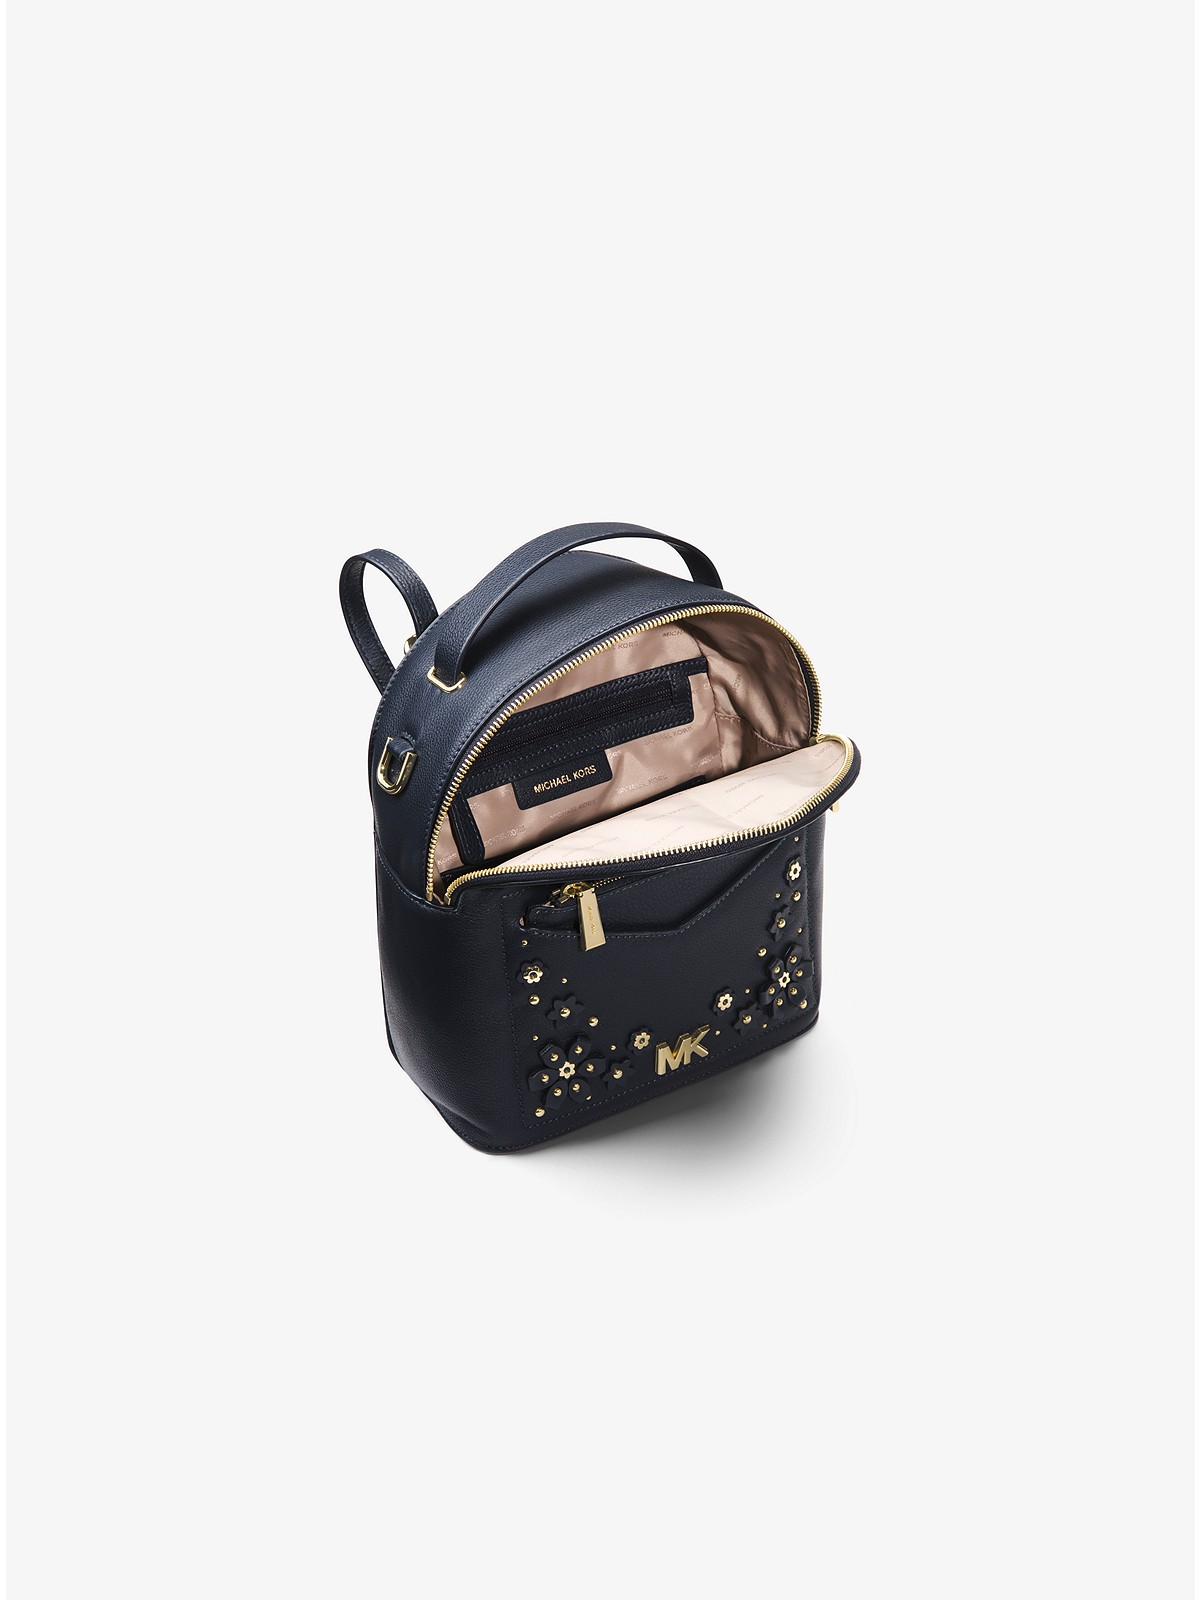 aad4680cfd0a Michael Kors - Jessa Small Floral Embellished Pebbled Leather Convertible  Backpack - 4